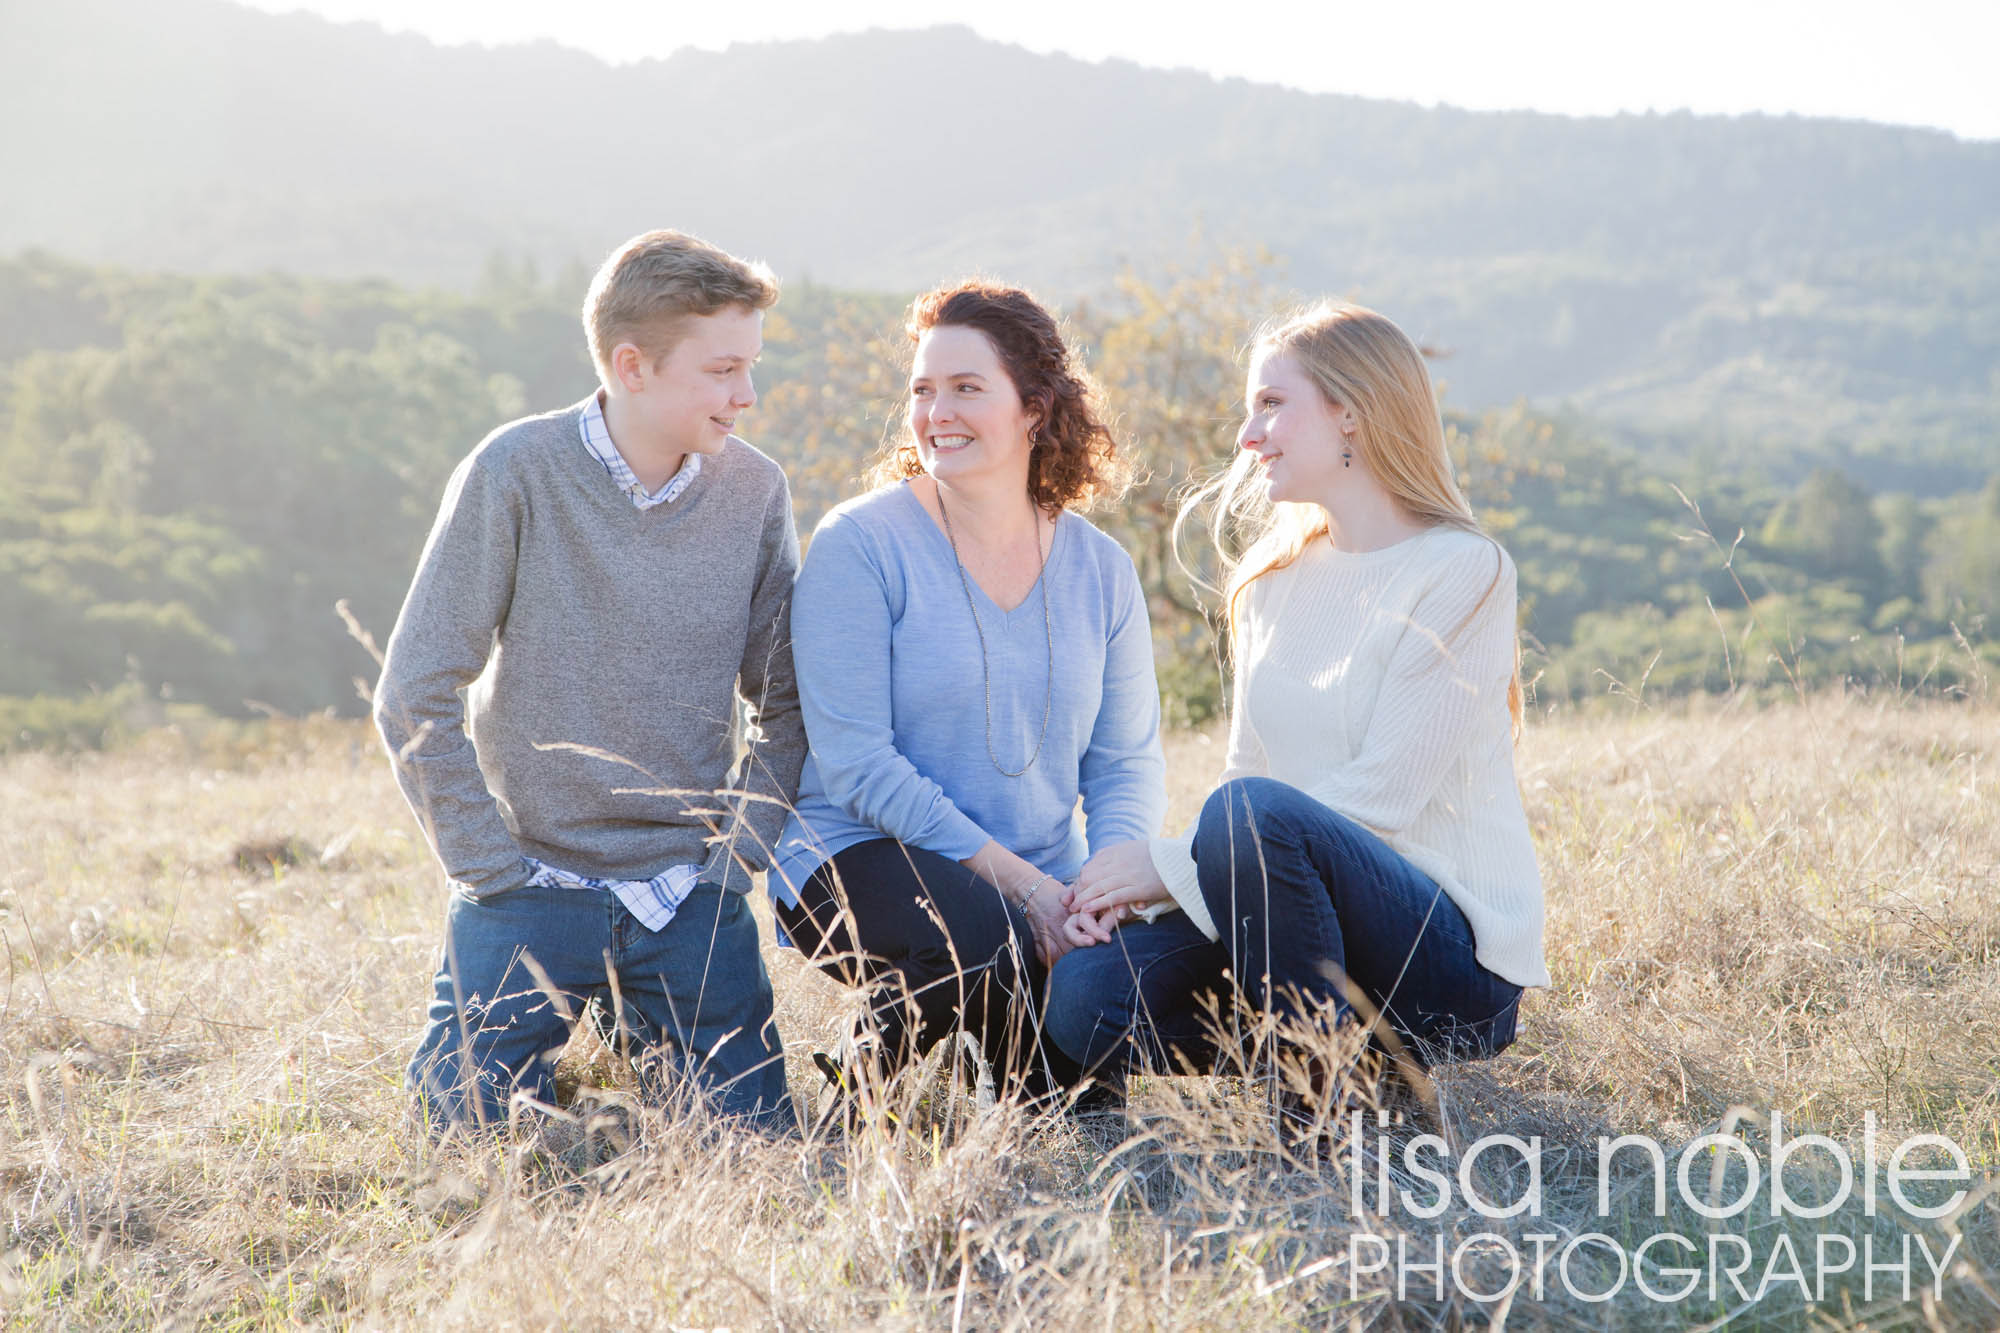 Family photographer has a photography session in the golden Bay Area hills